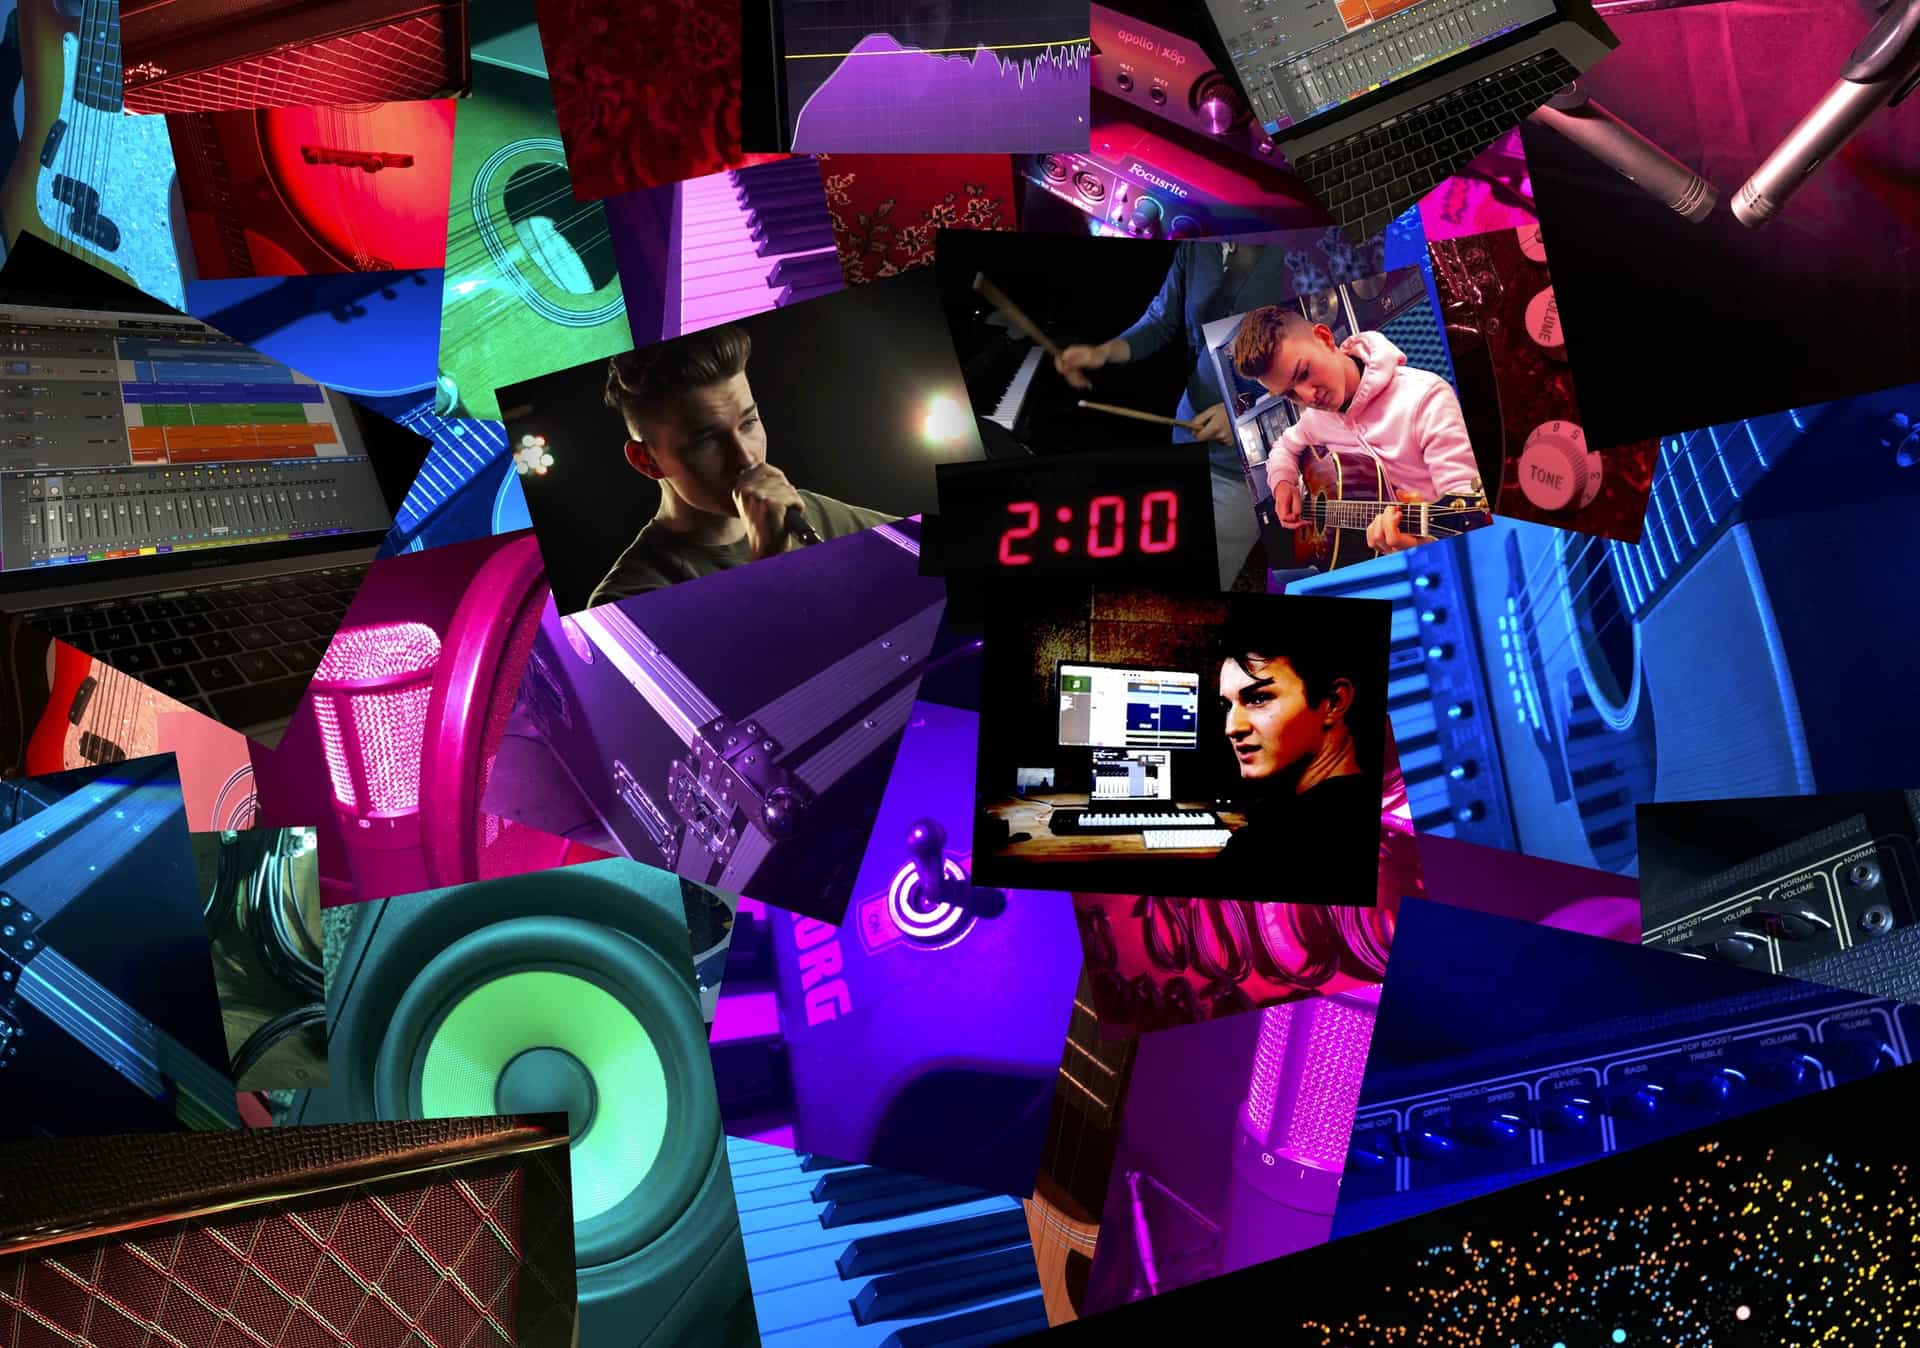 2AM in the Basement, main banner image, a collage of musical instruments